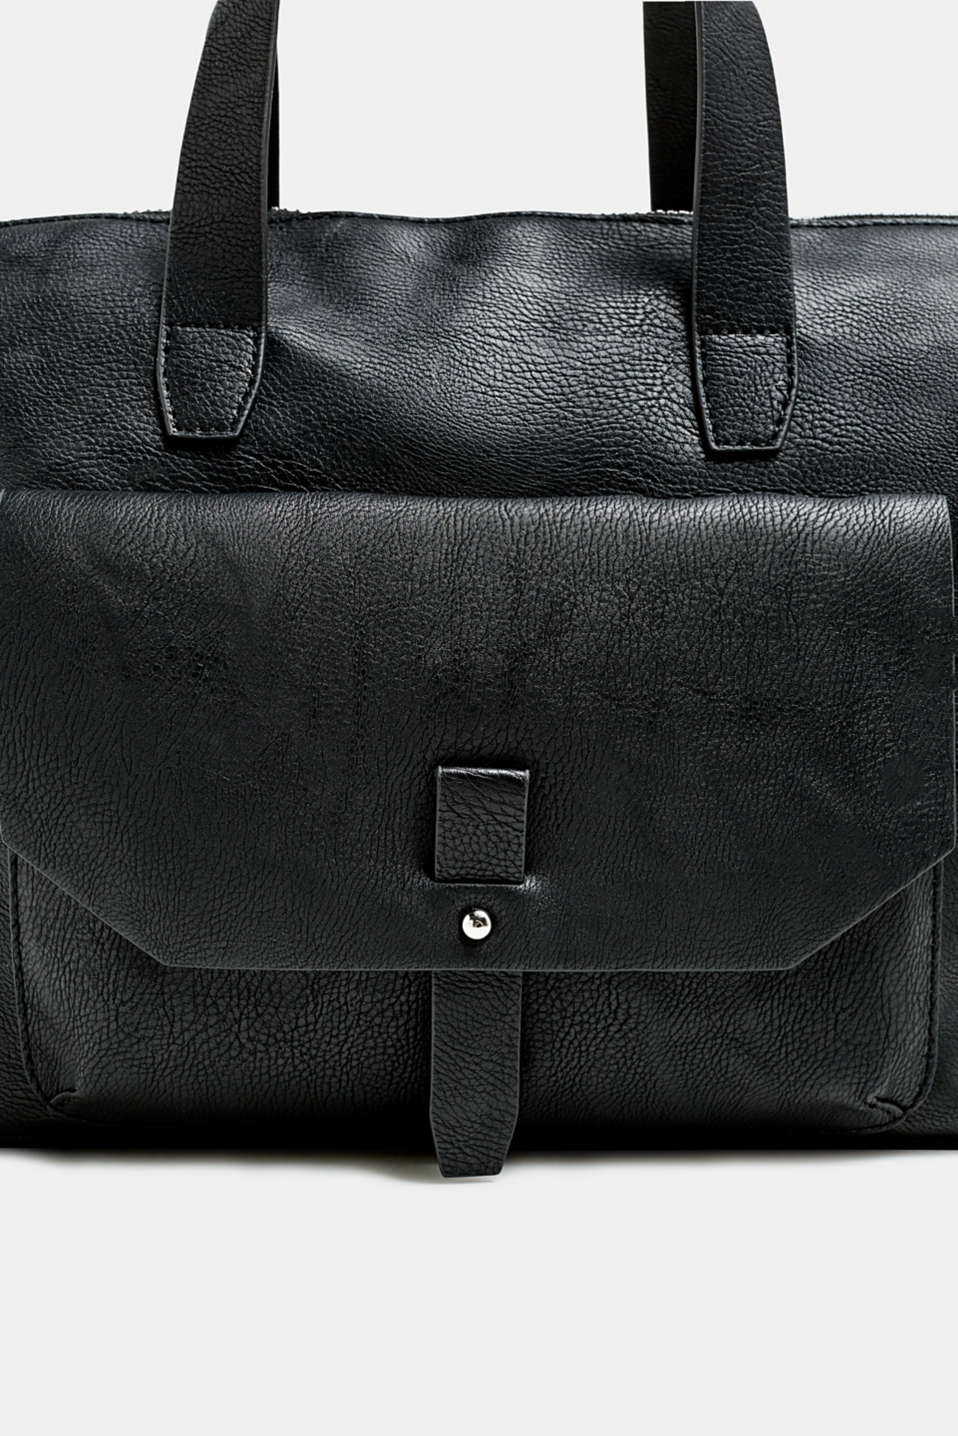 Working bag in faux leather, BLACK, detail image number 3